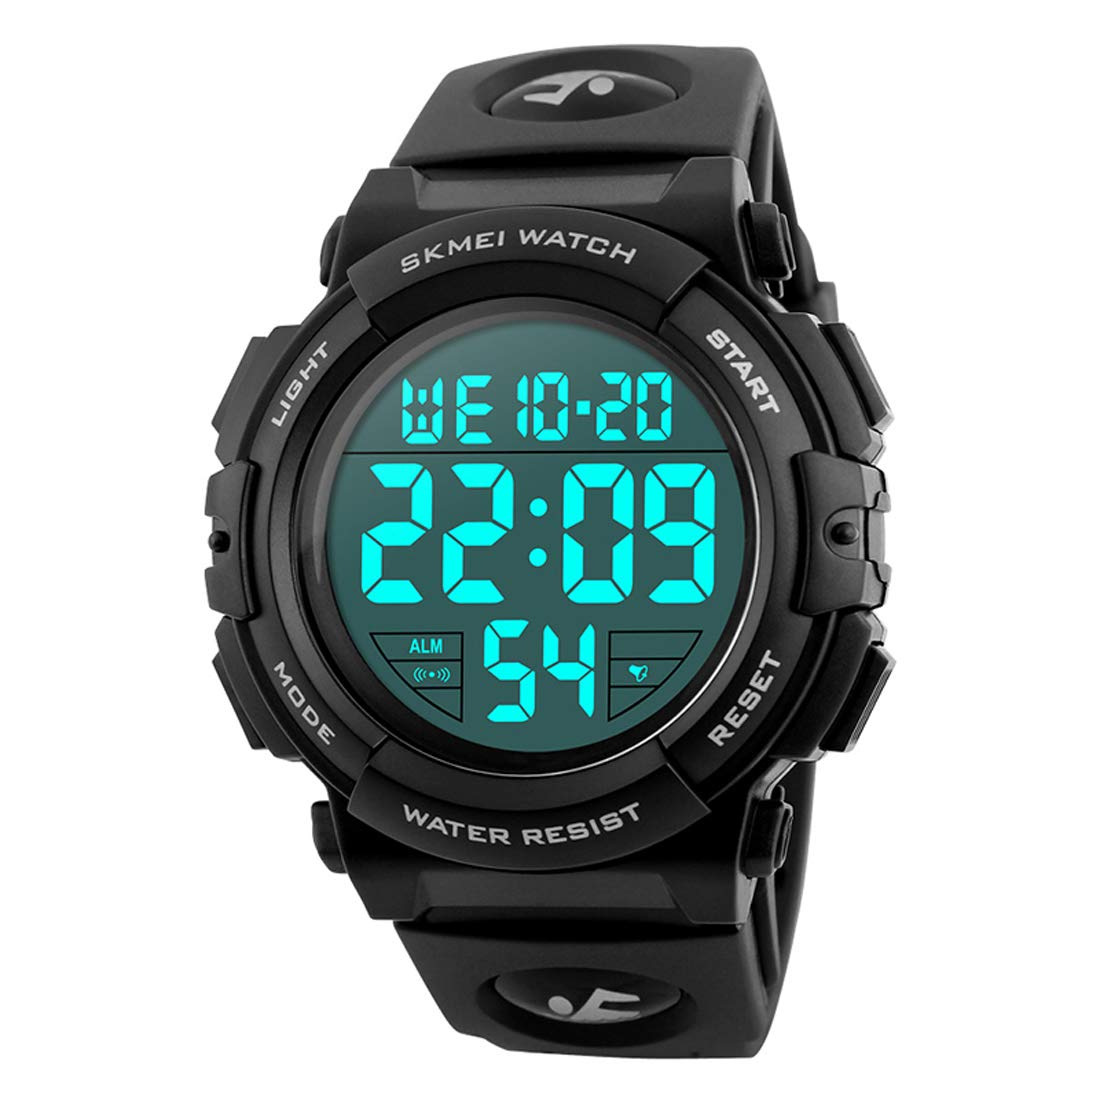 CakCity Mens Digital Sports Watch Outdoors Waterproof LED Screen Wrist Watches Large Dial Military Army Watch with Alarm